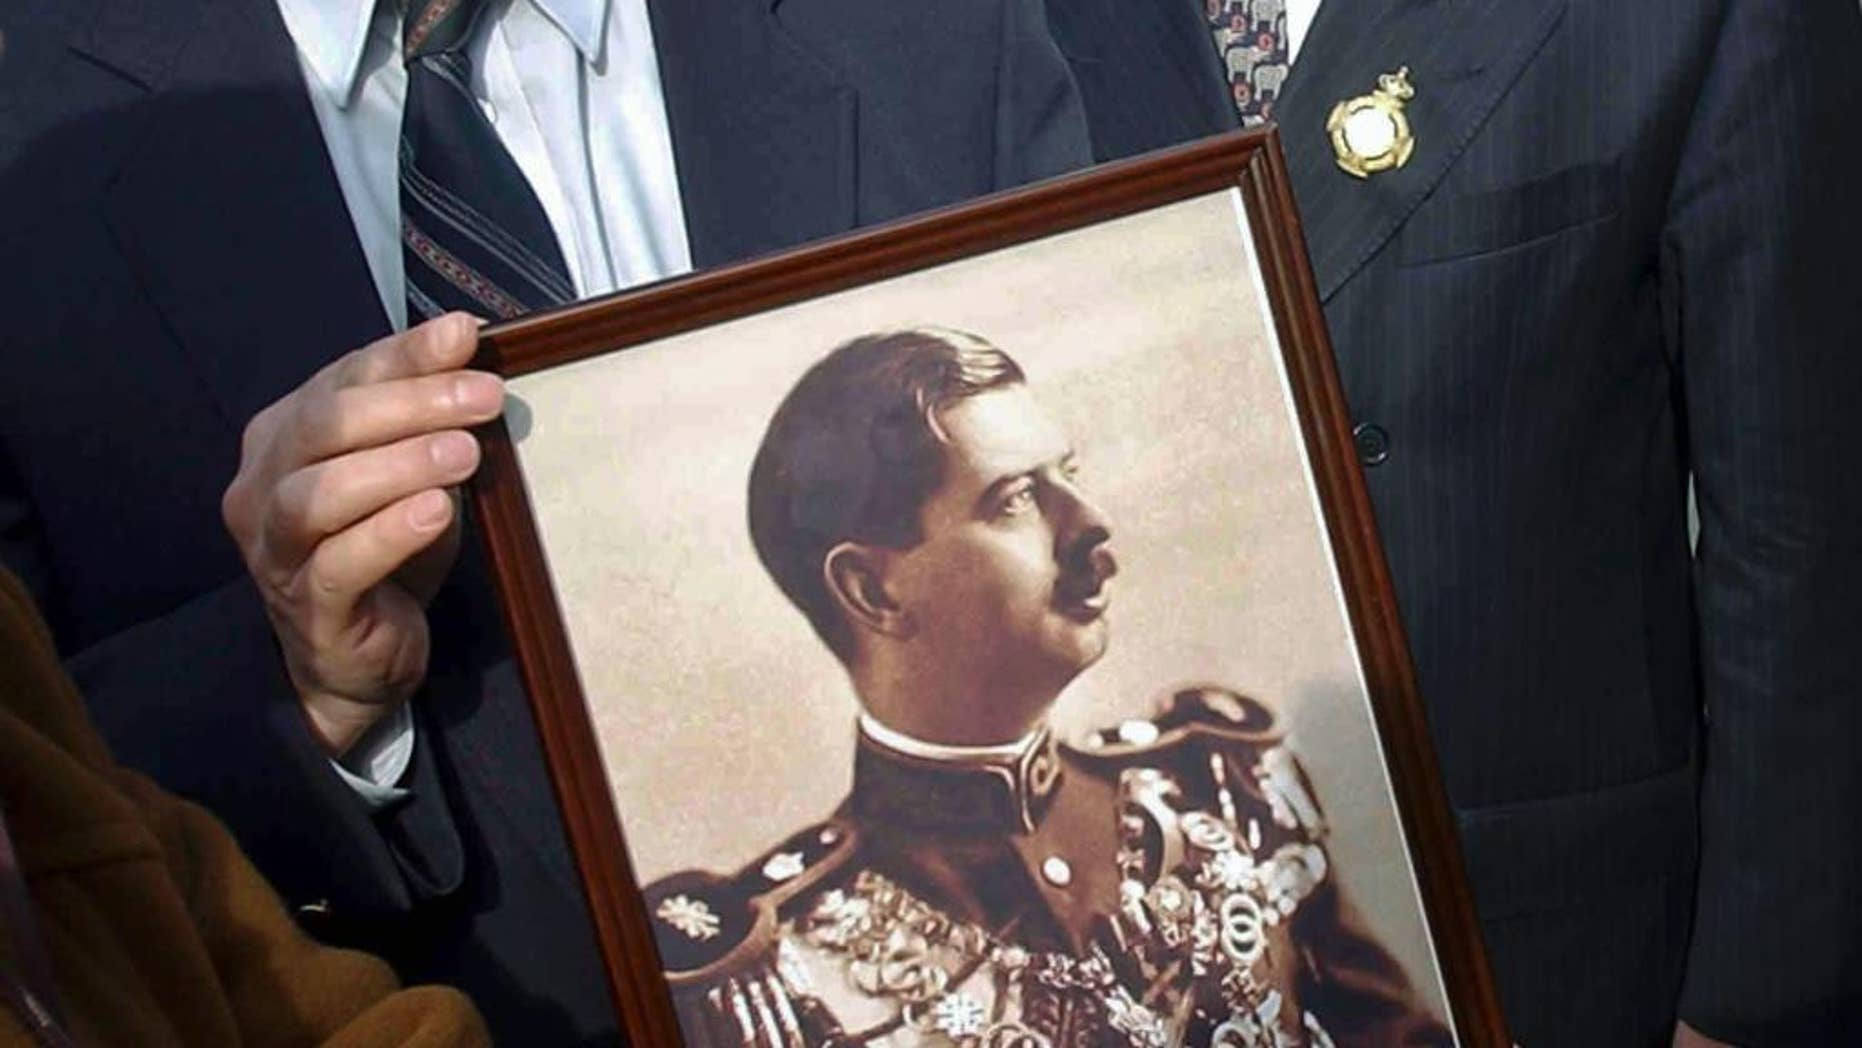 FILE - In this Feb.13 2003, file picture an unidentified man holds a photograph of Romania's King Carol II as Romania's Prince Paul, right, walks past outside a church in Lisbon, Portugal, where the king was buried.  Prosecutors have detained Romania's Prince Paul, Friday, Dec. 11, 2015, in a case of alleged real estate fraud involving a top aide to a former prime minister and a newspaper editor.(AP Photo/Armando Franca, File)